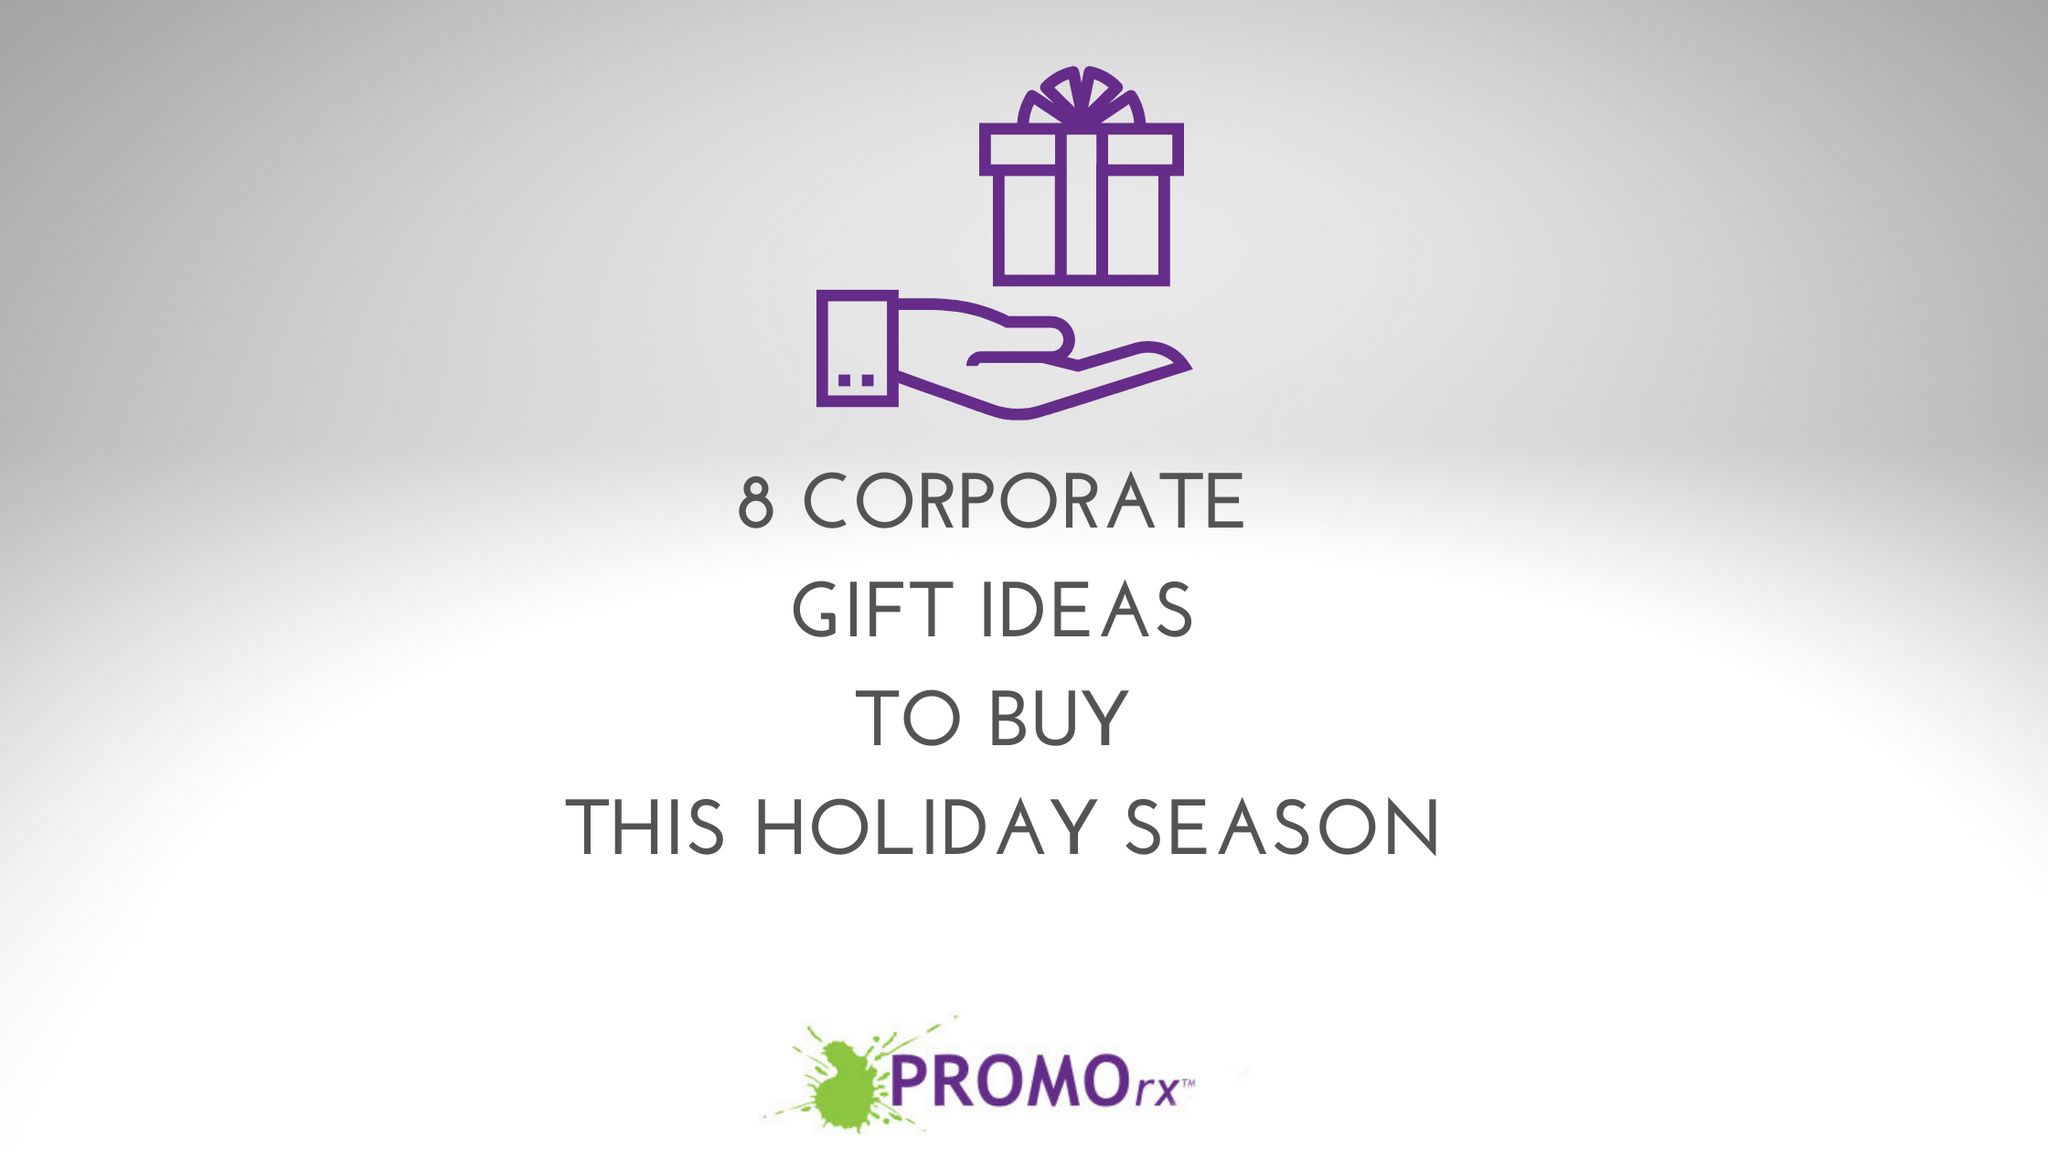 8 Corporate Gift Ideas to Buy this Holiday Season